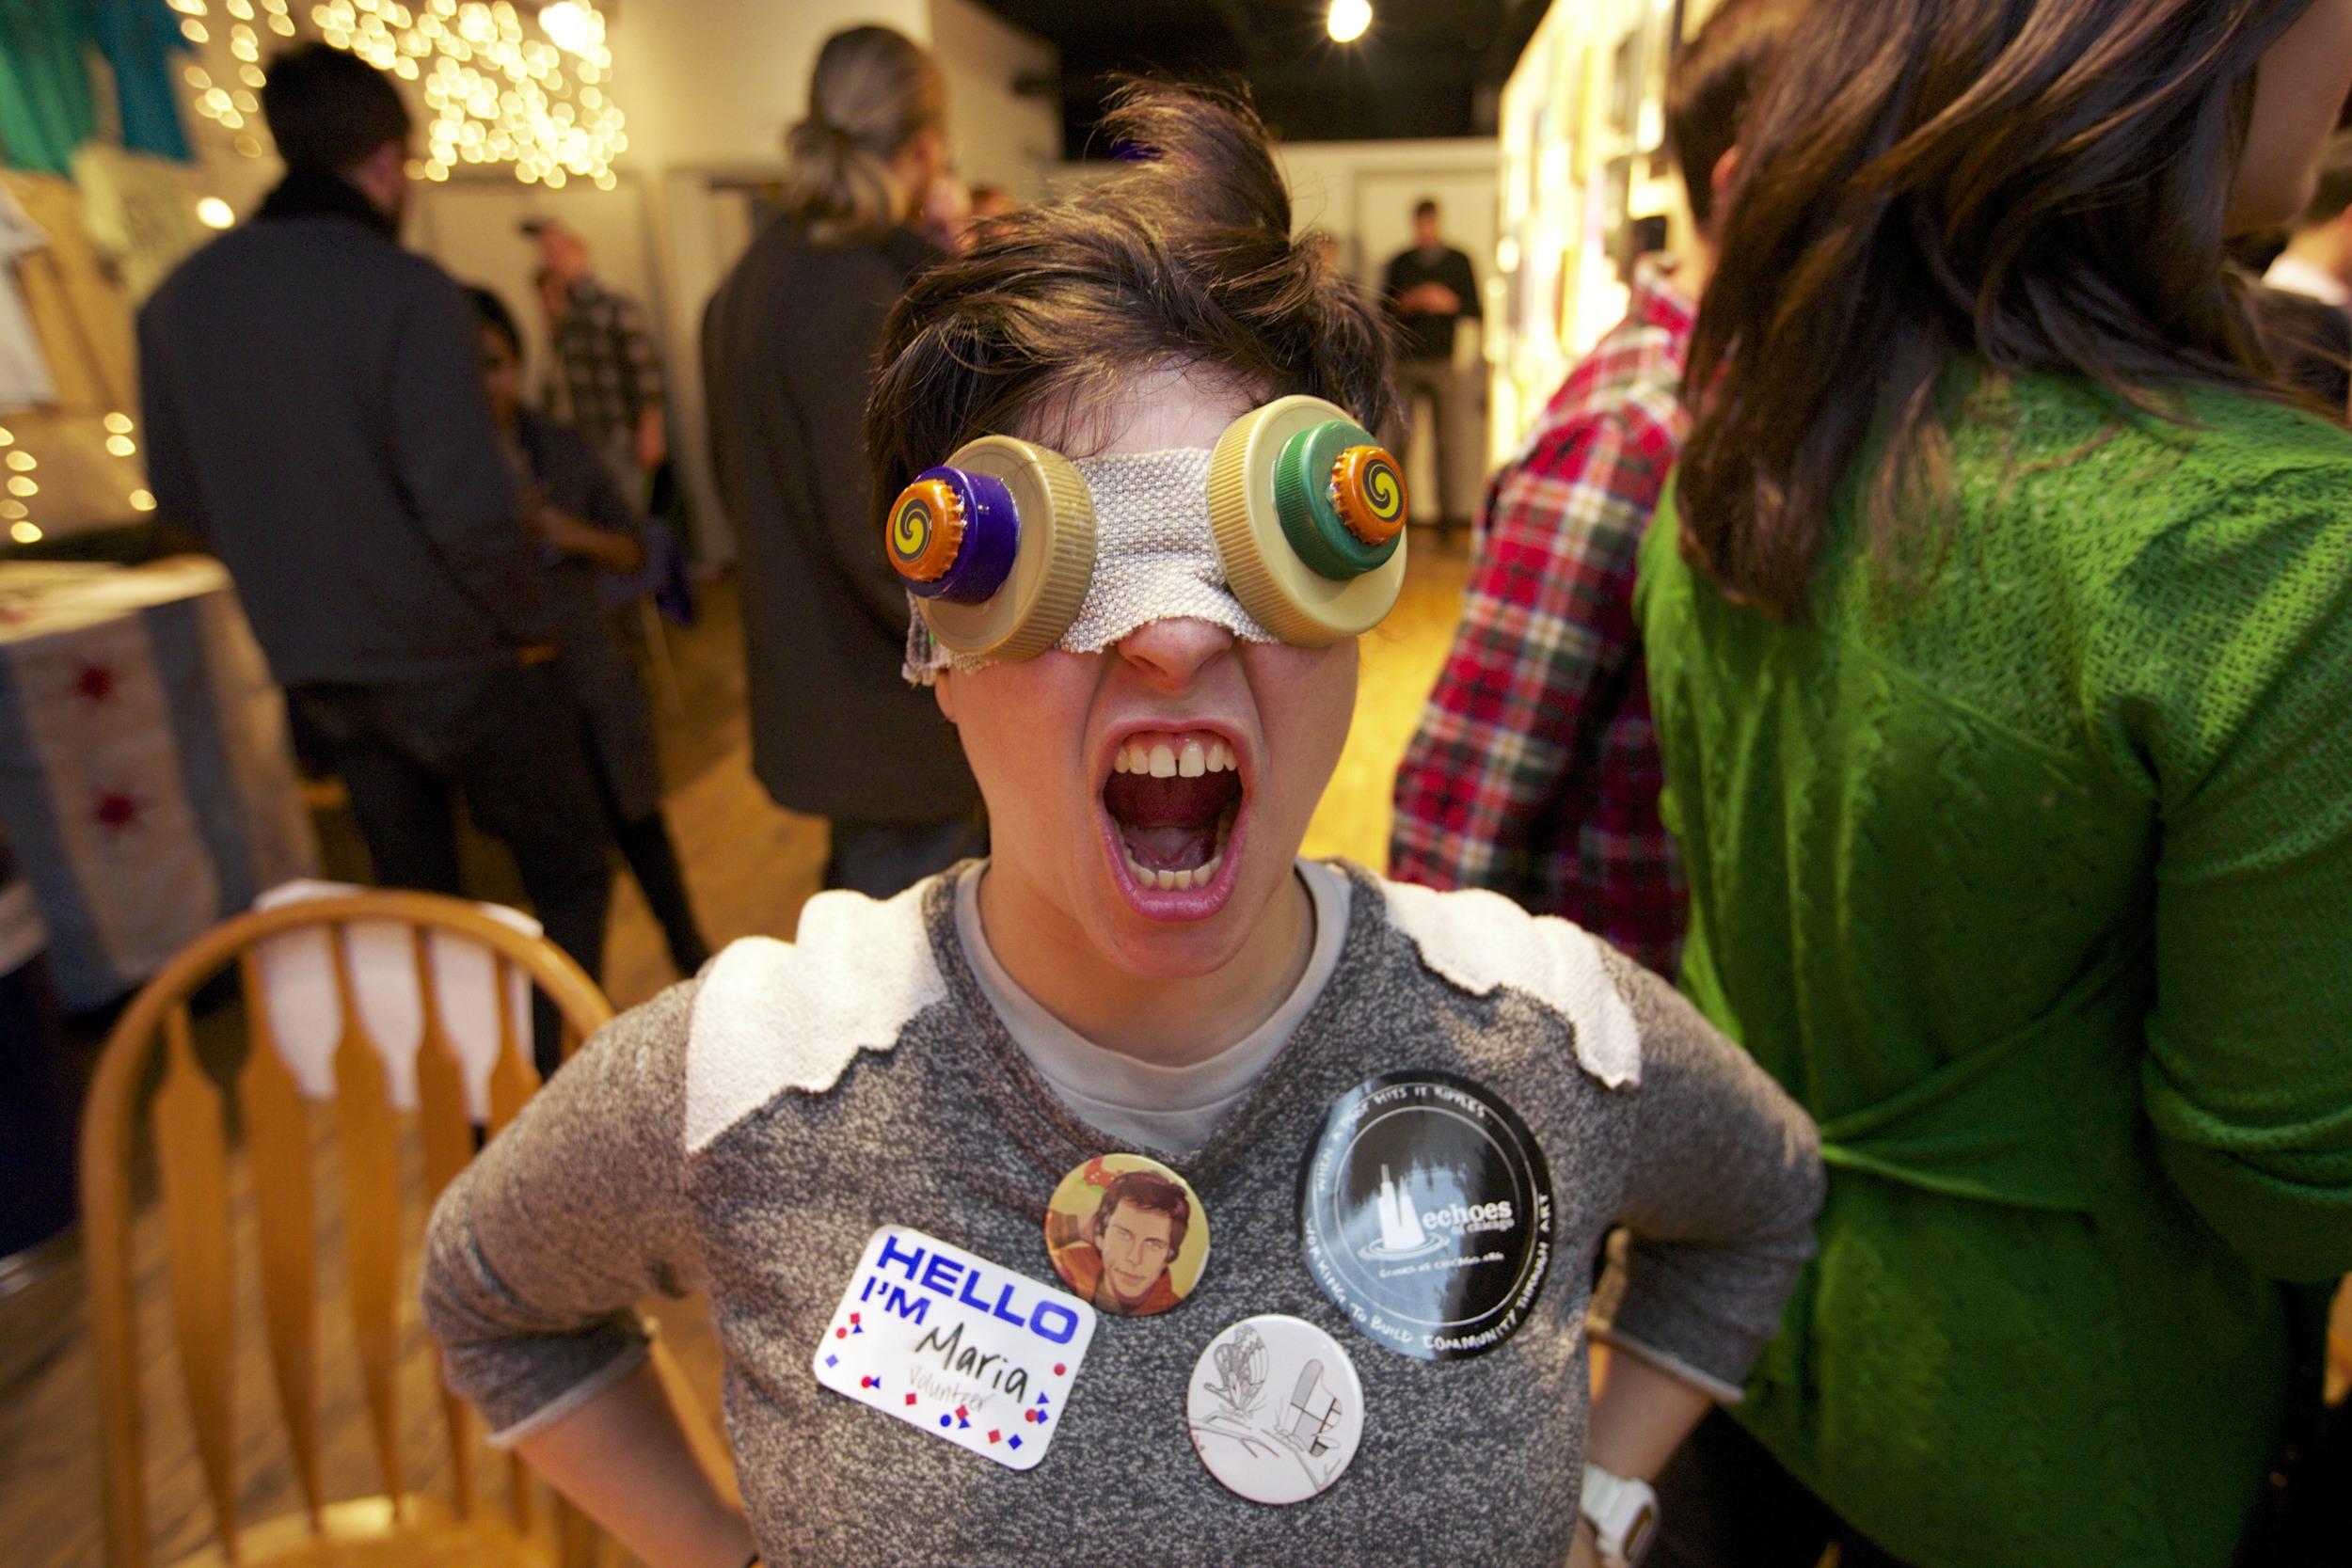 One of the volunteers made these goggles. They were pretty awesome.